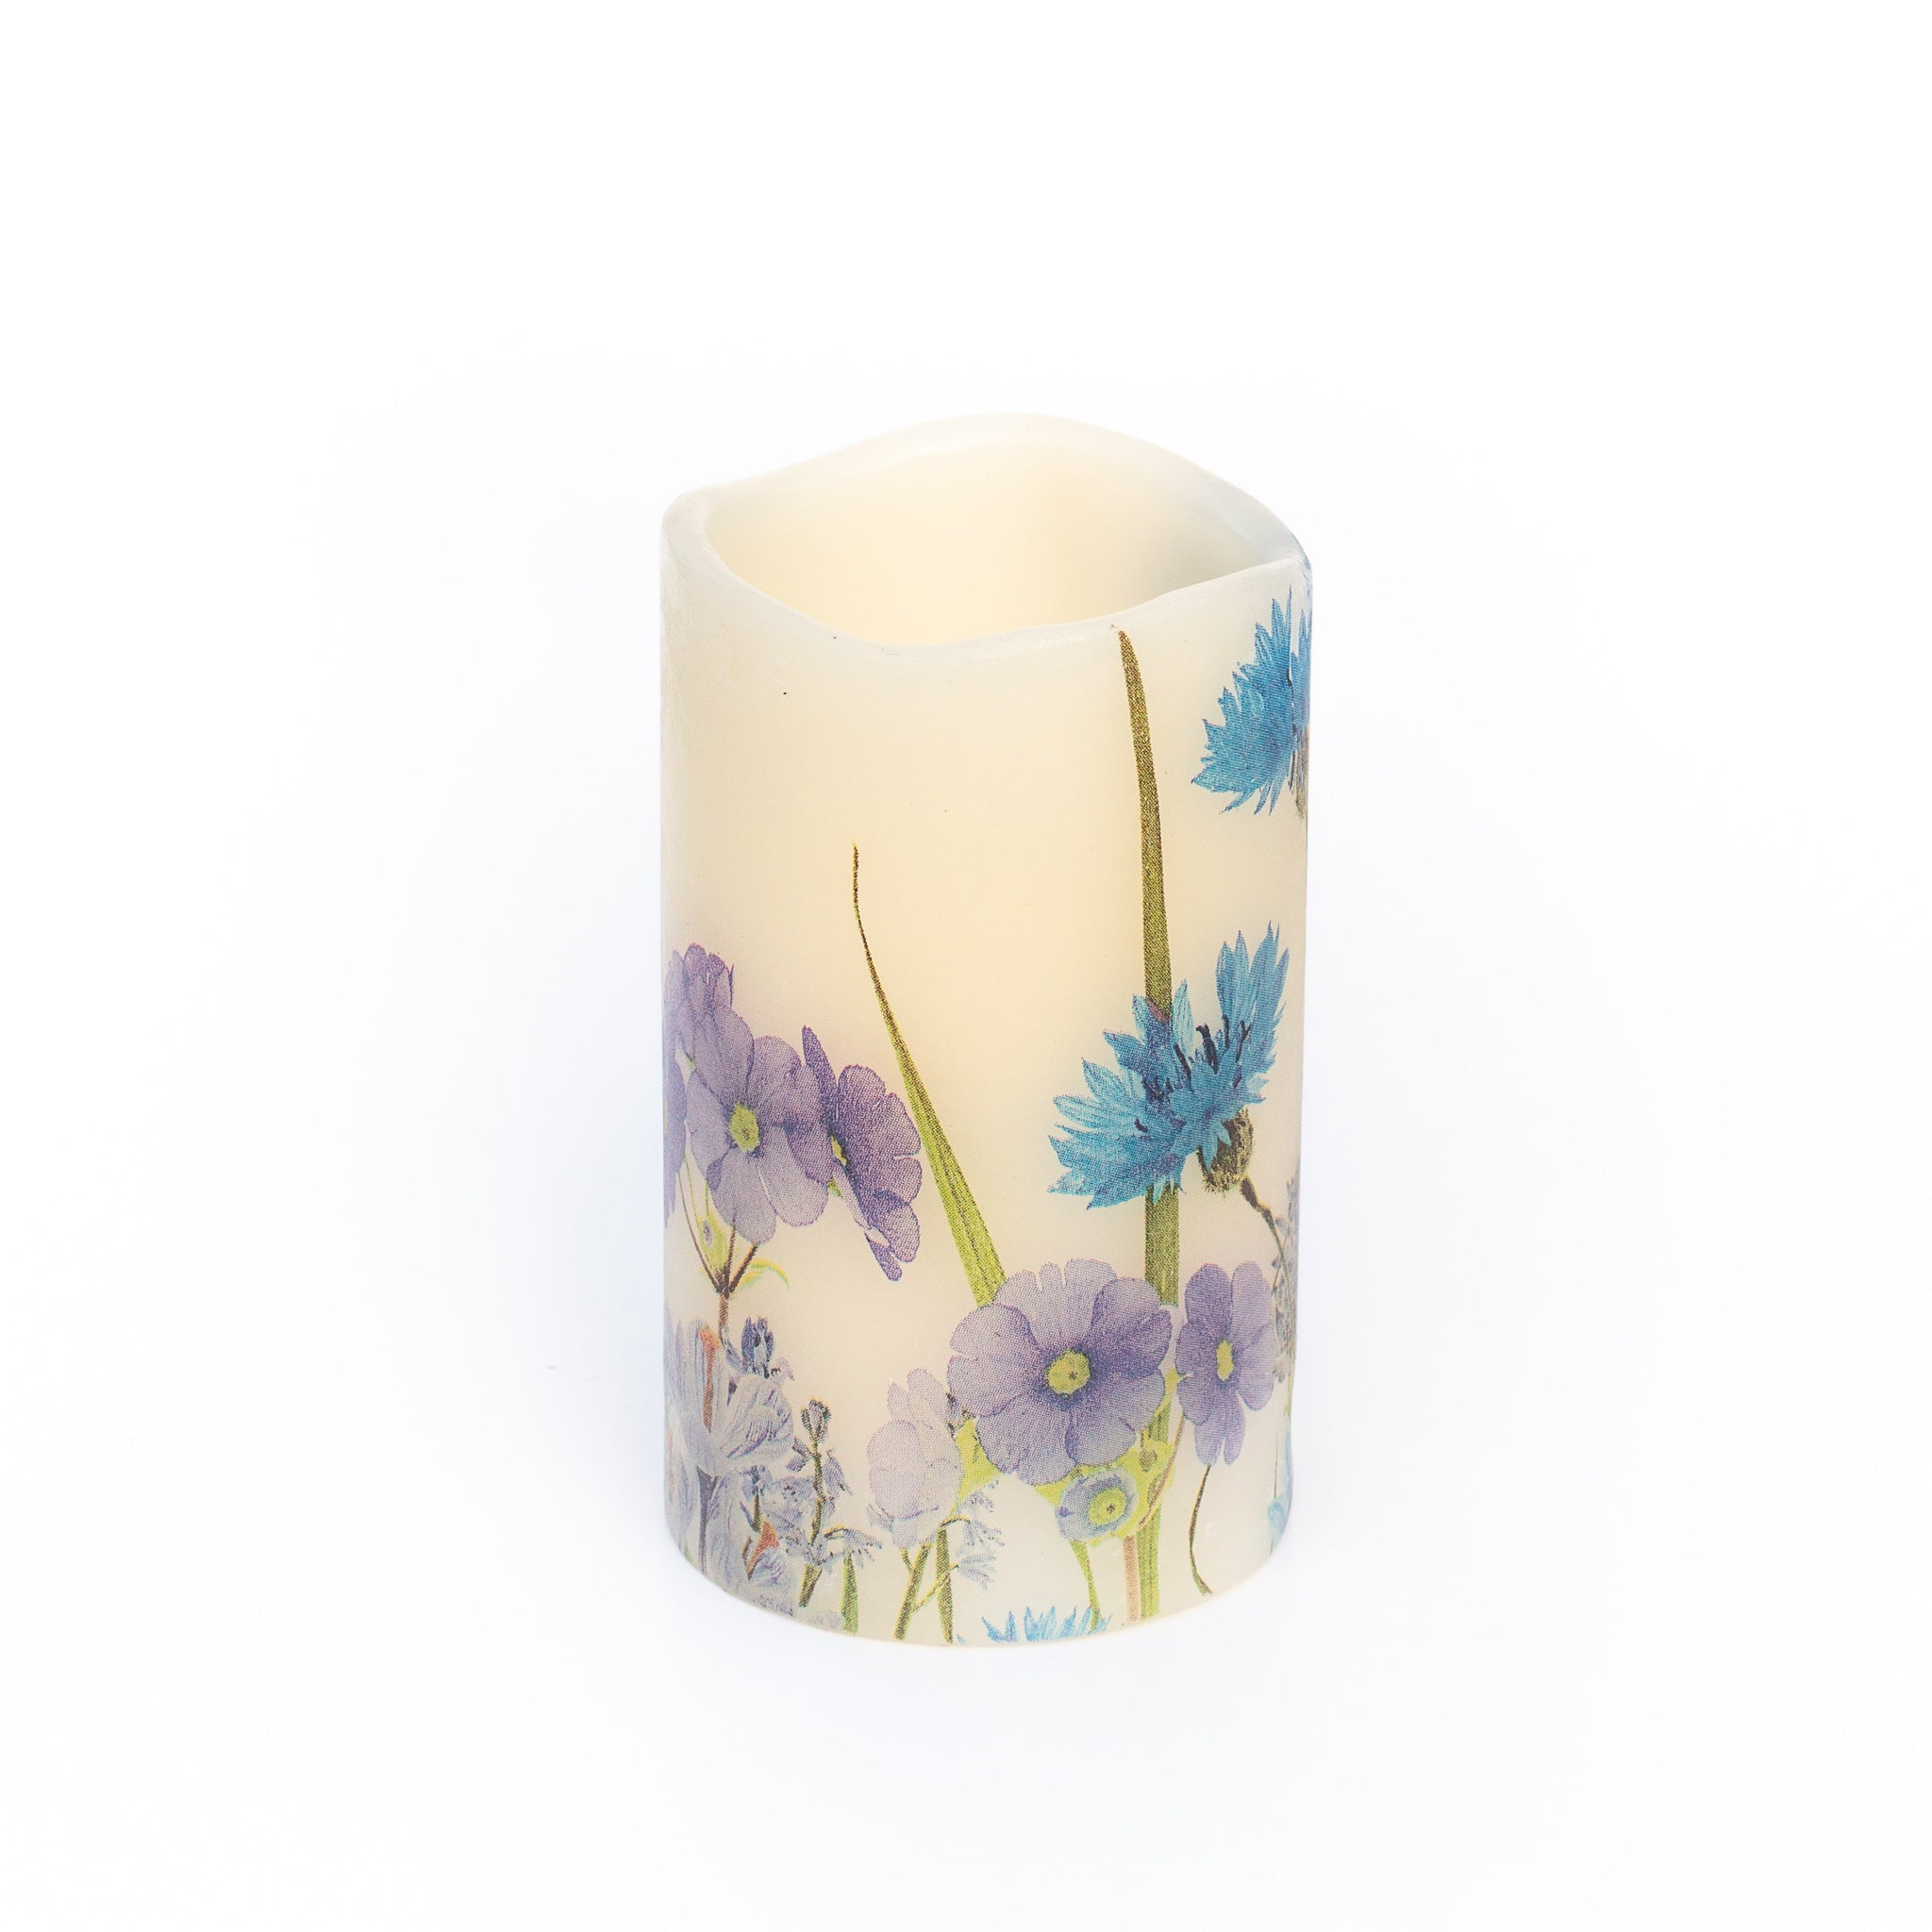 Unique Mothers Day Gift - LED Candle With Cornflower Design